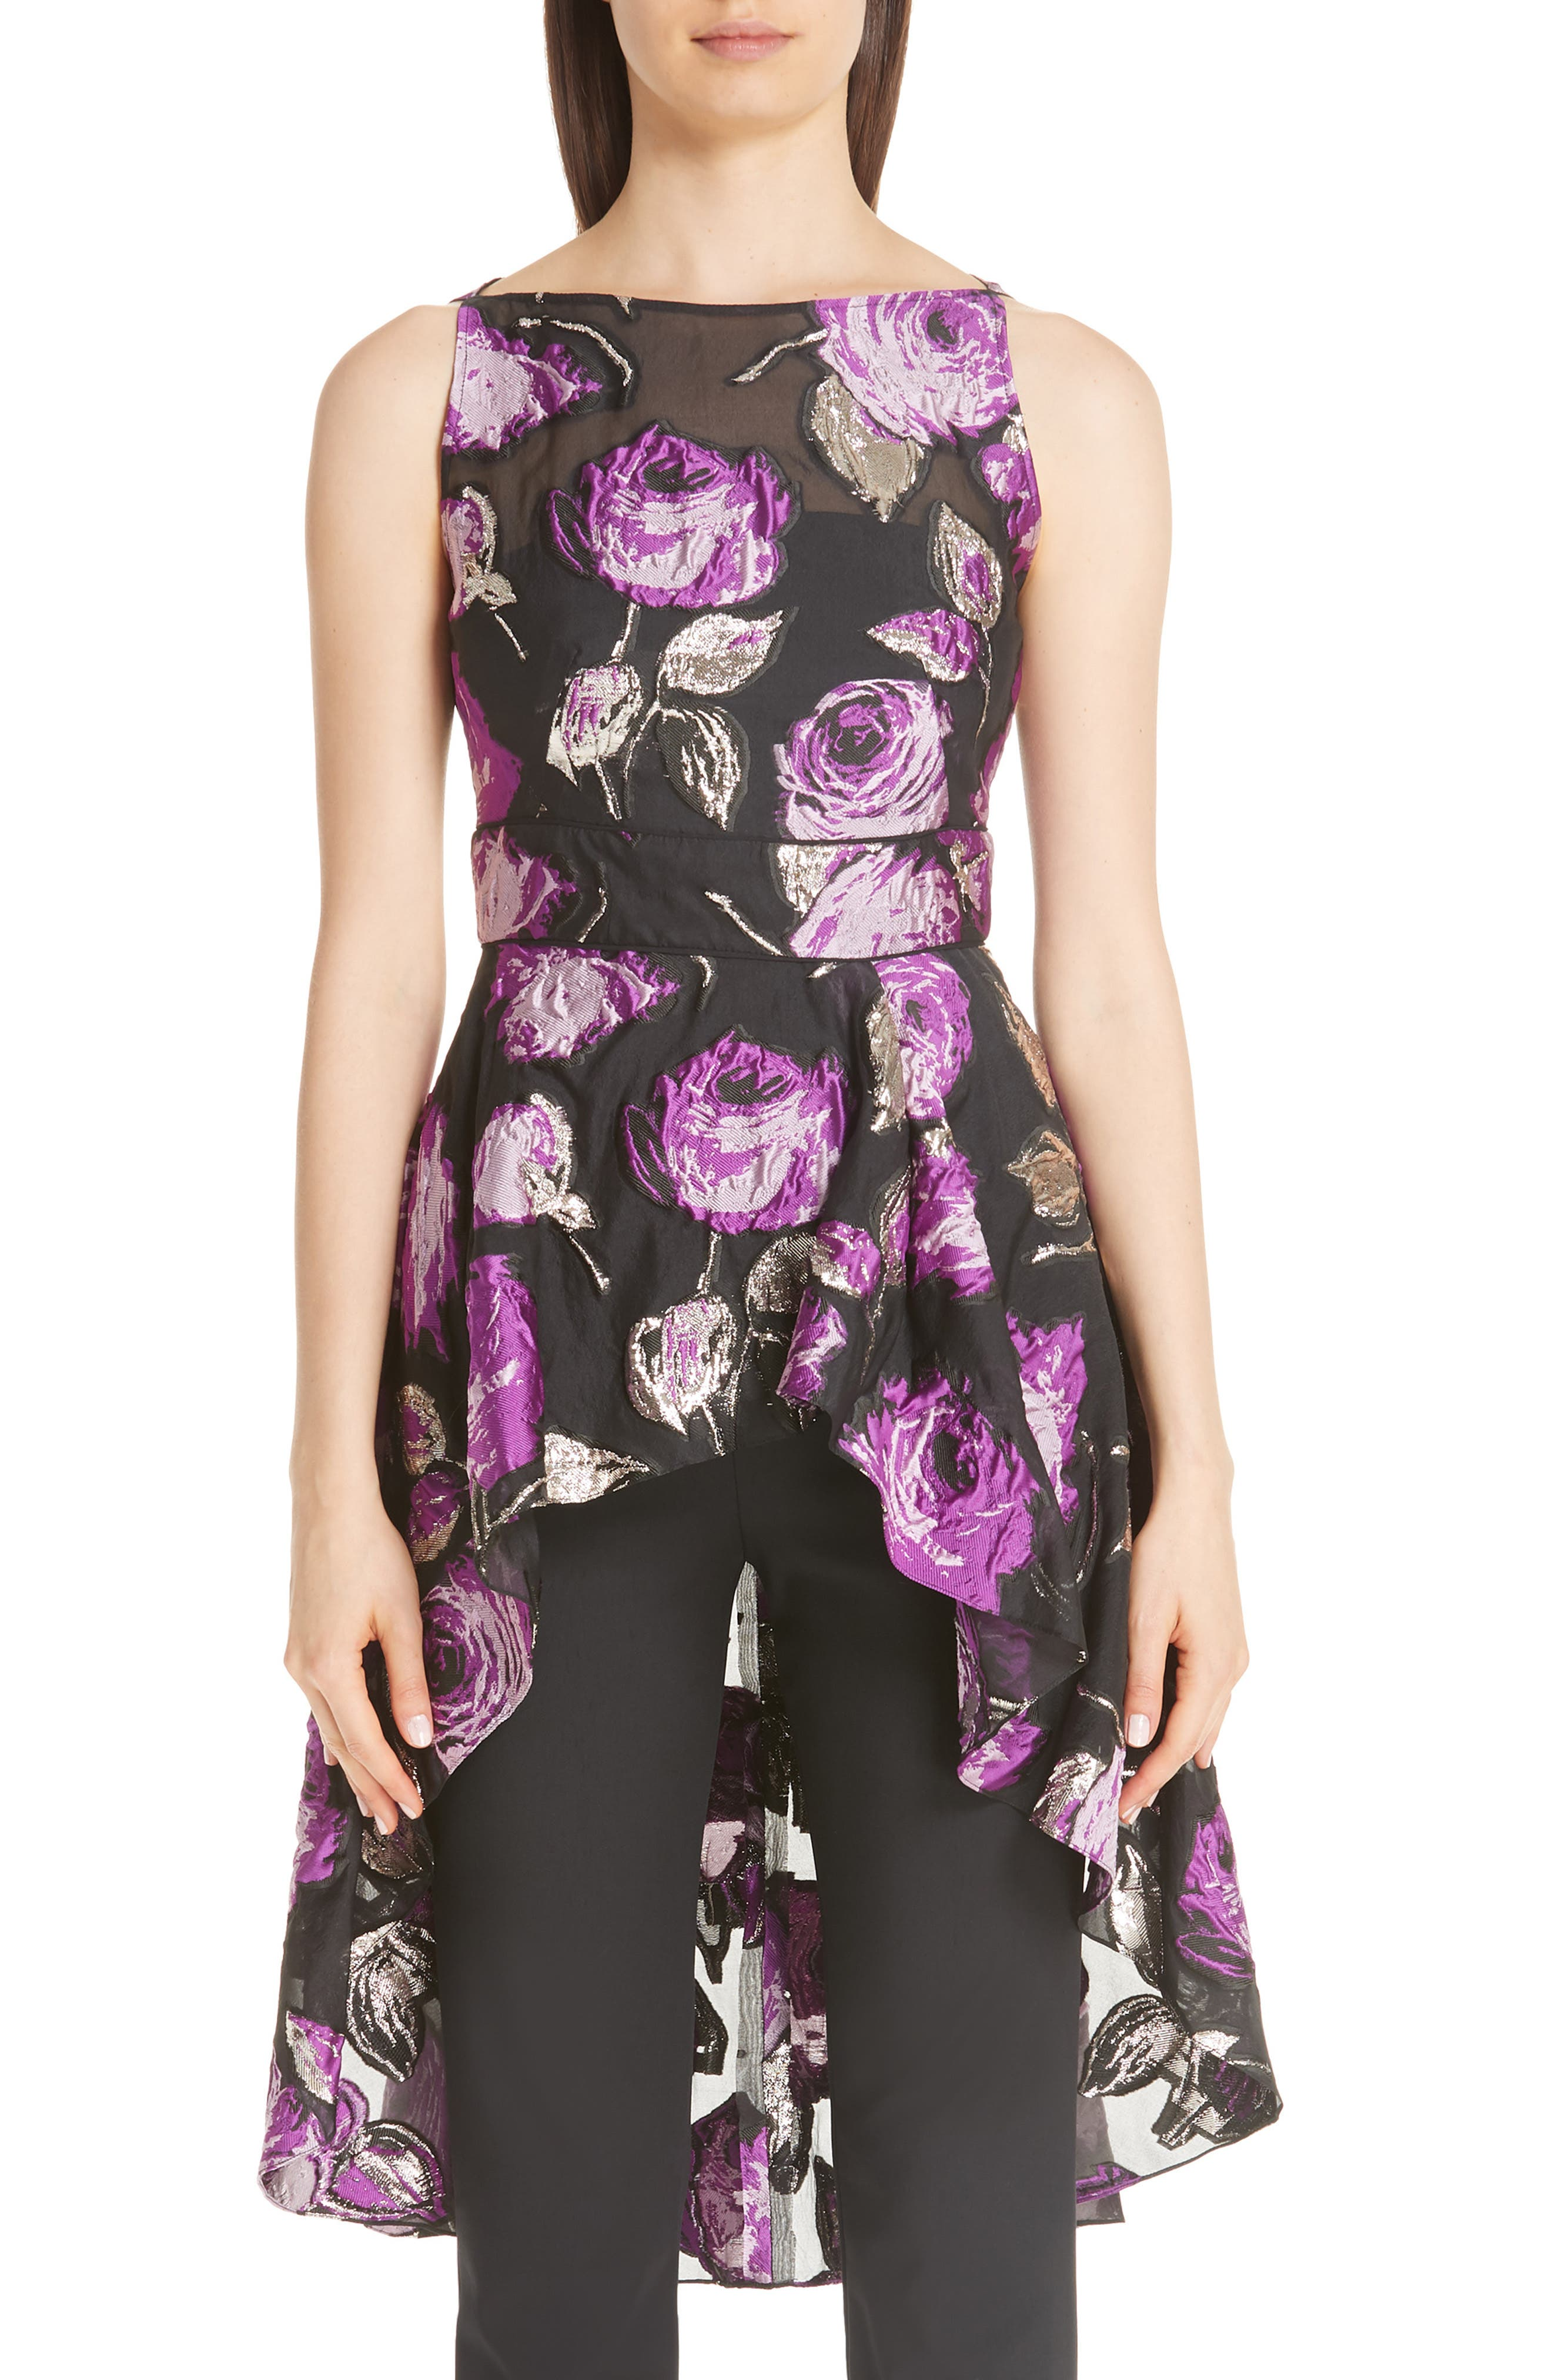 LELA ROSE Metallic Floral Fil Coupe High/Low Peplum Blouse in Lavender/ Black